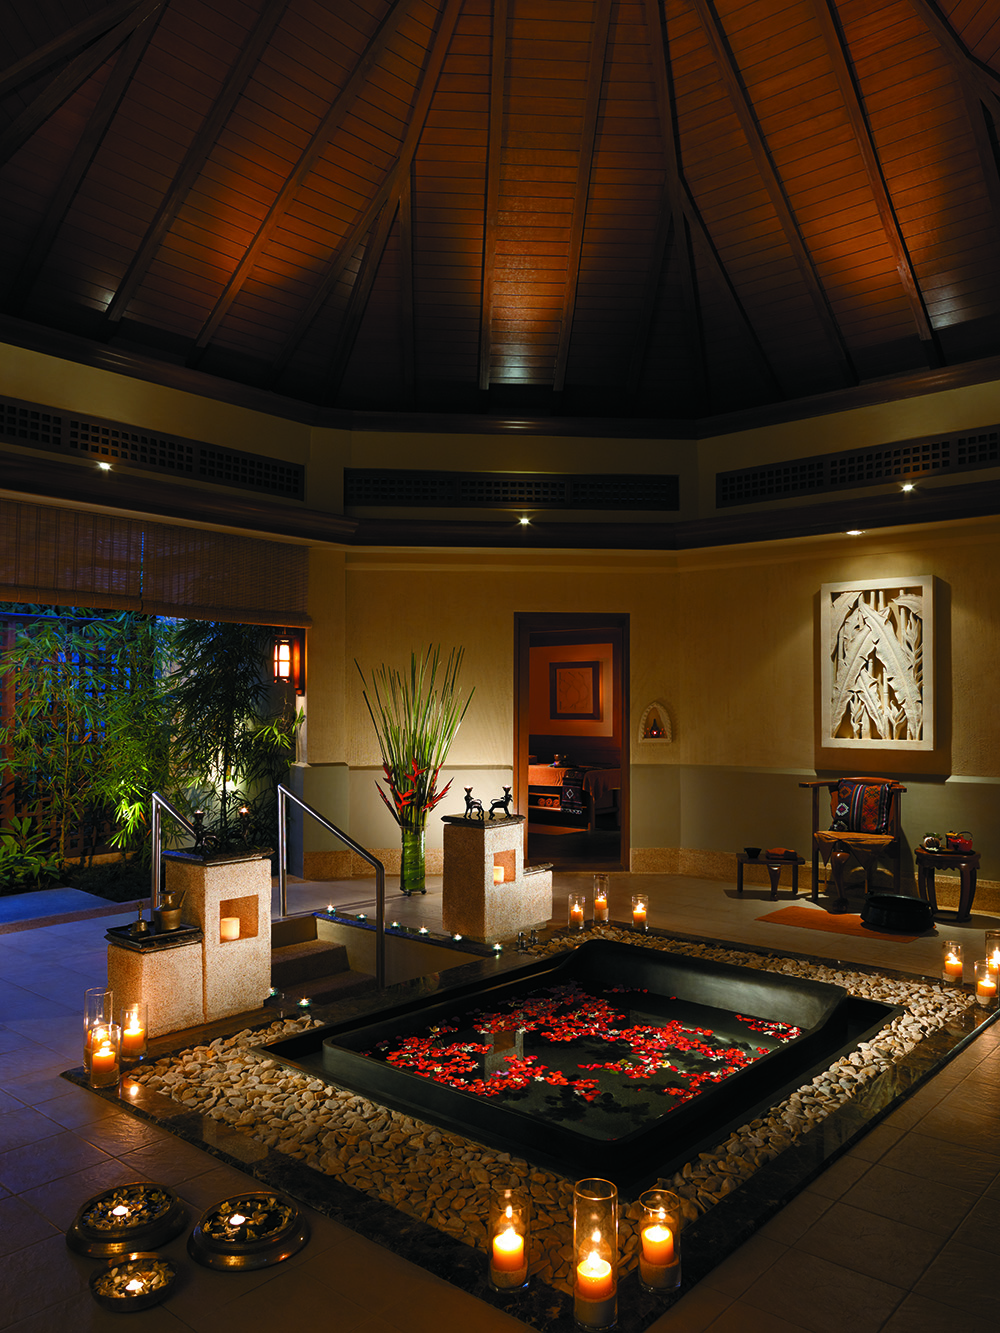 Spa villa bath.